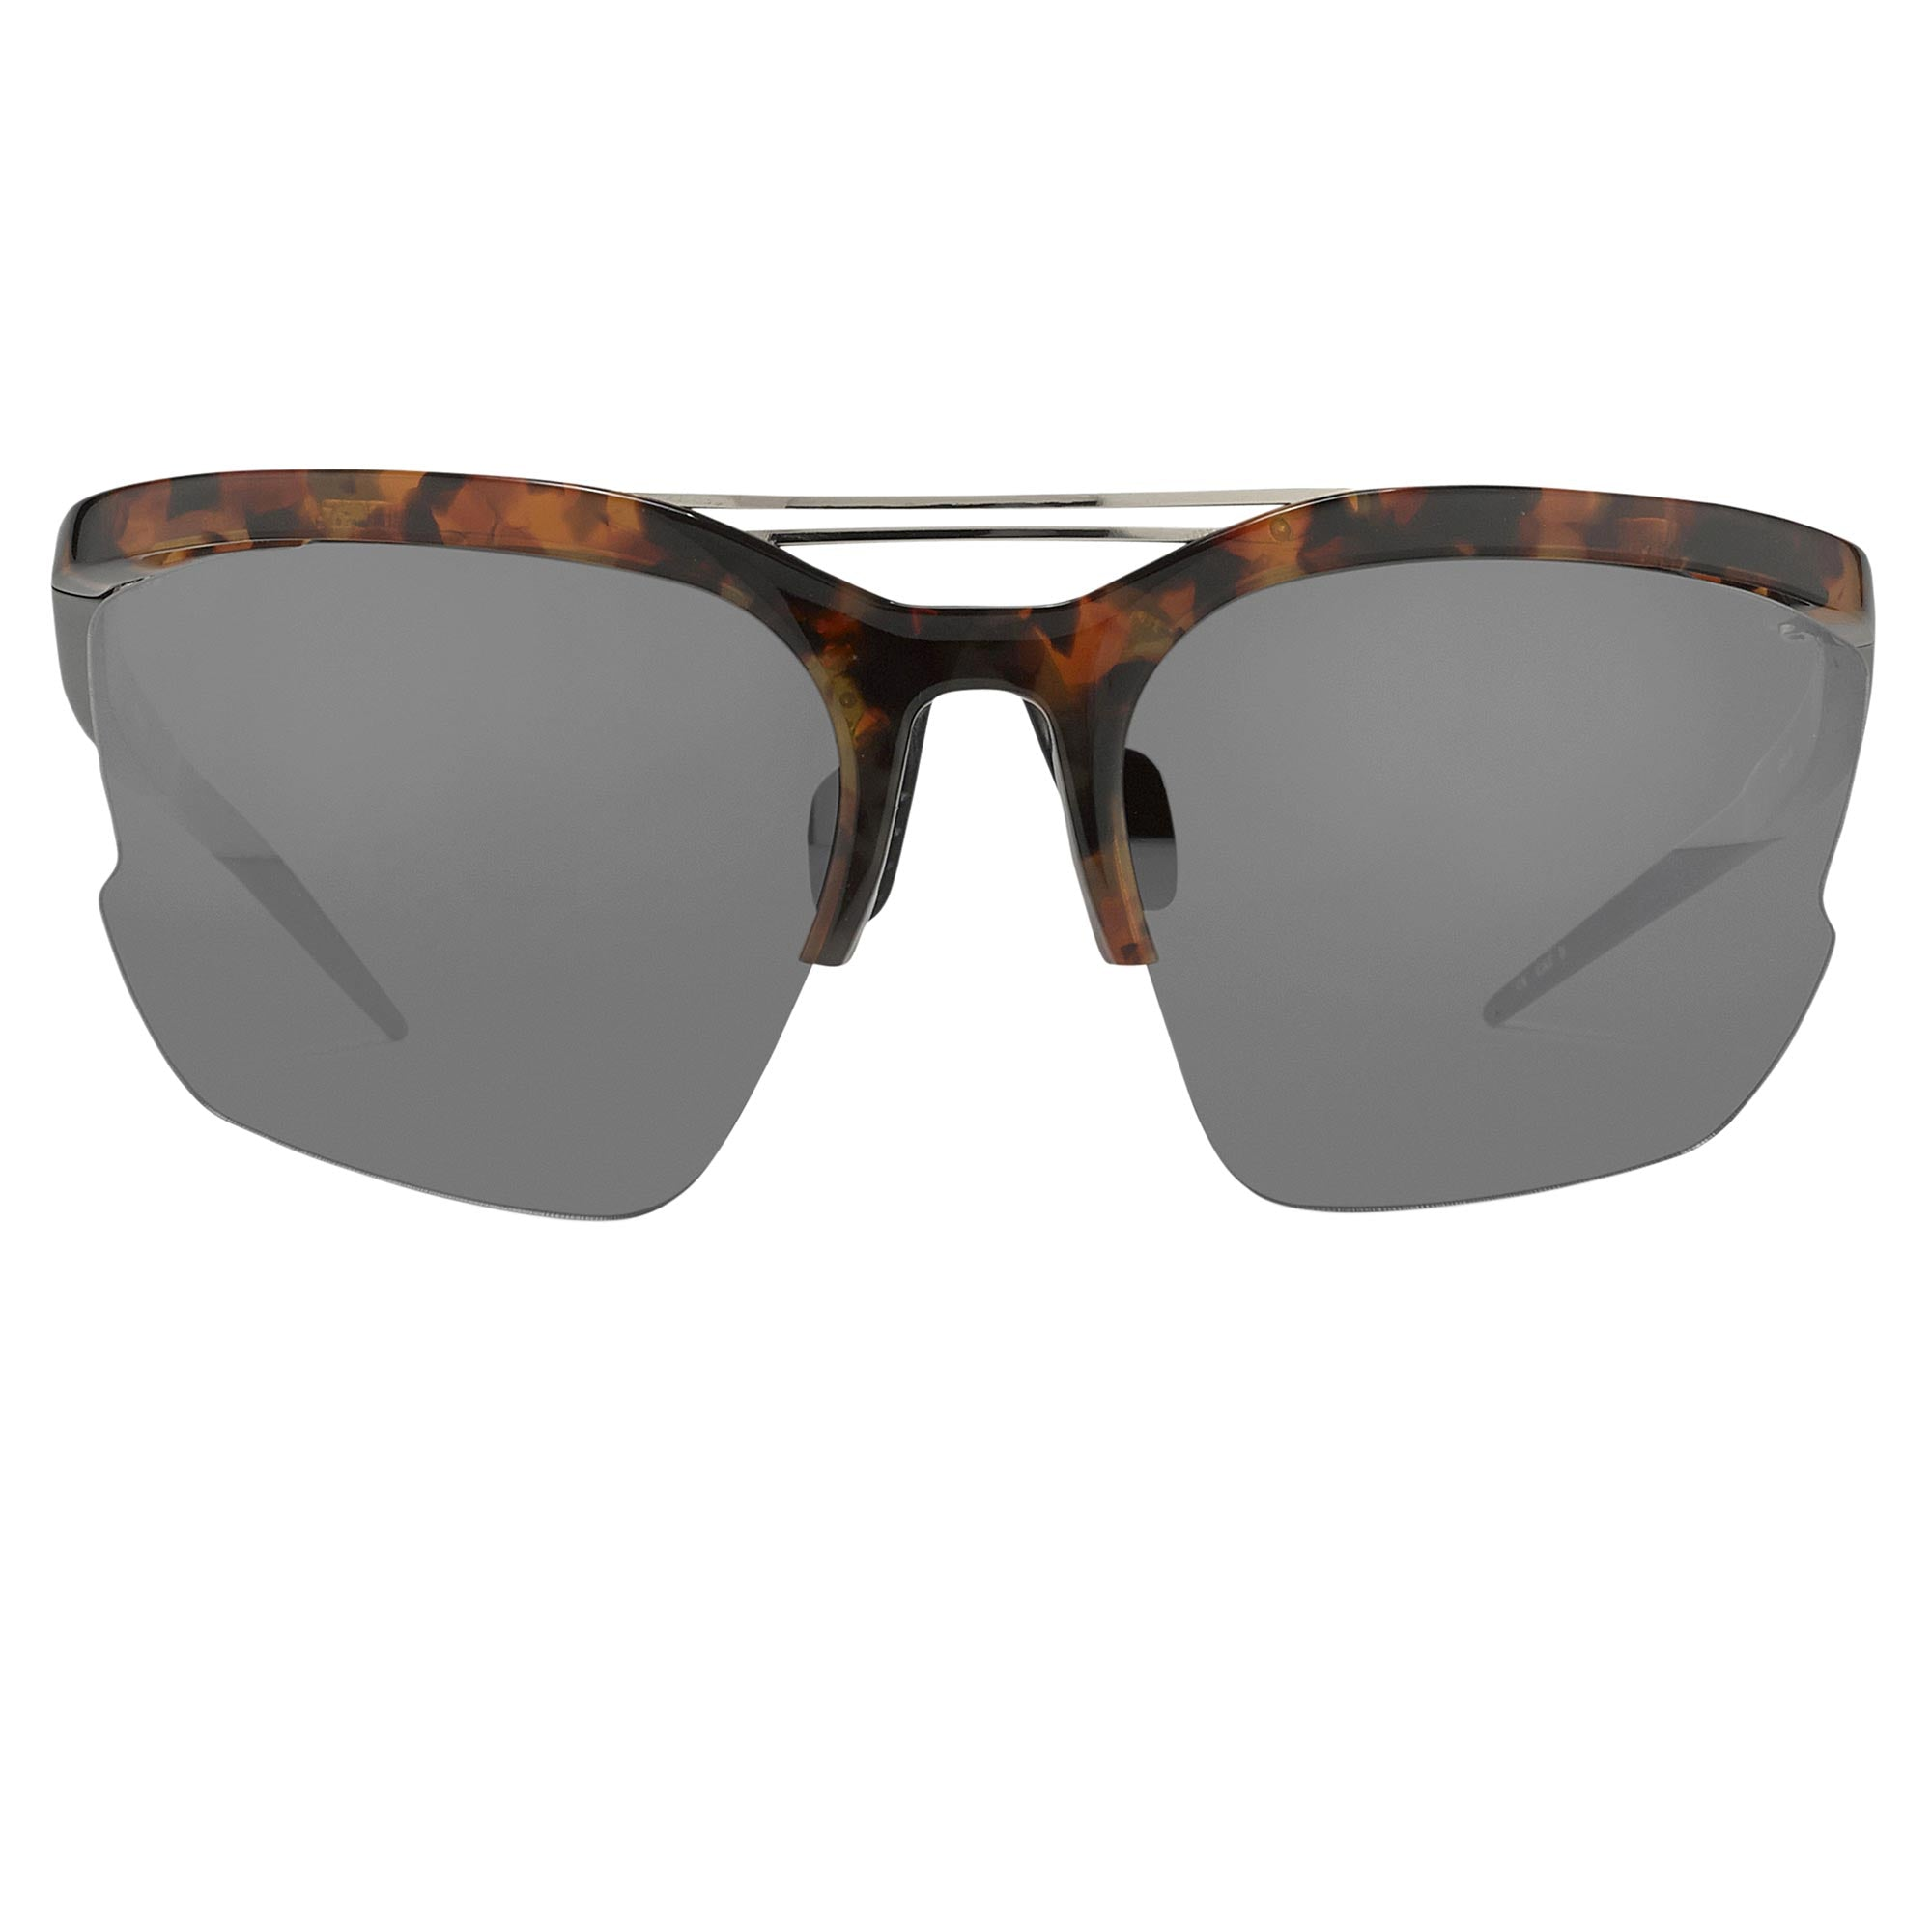 Prabal Gurung Sunglasses Female Special Frame Tortoiseshell Category 3 Black Lenses PG21C6SUN - Watches & Crystals